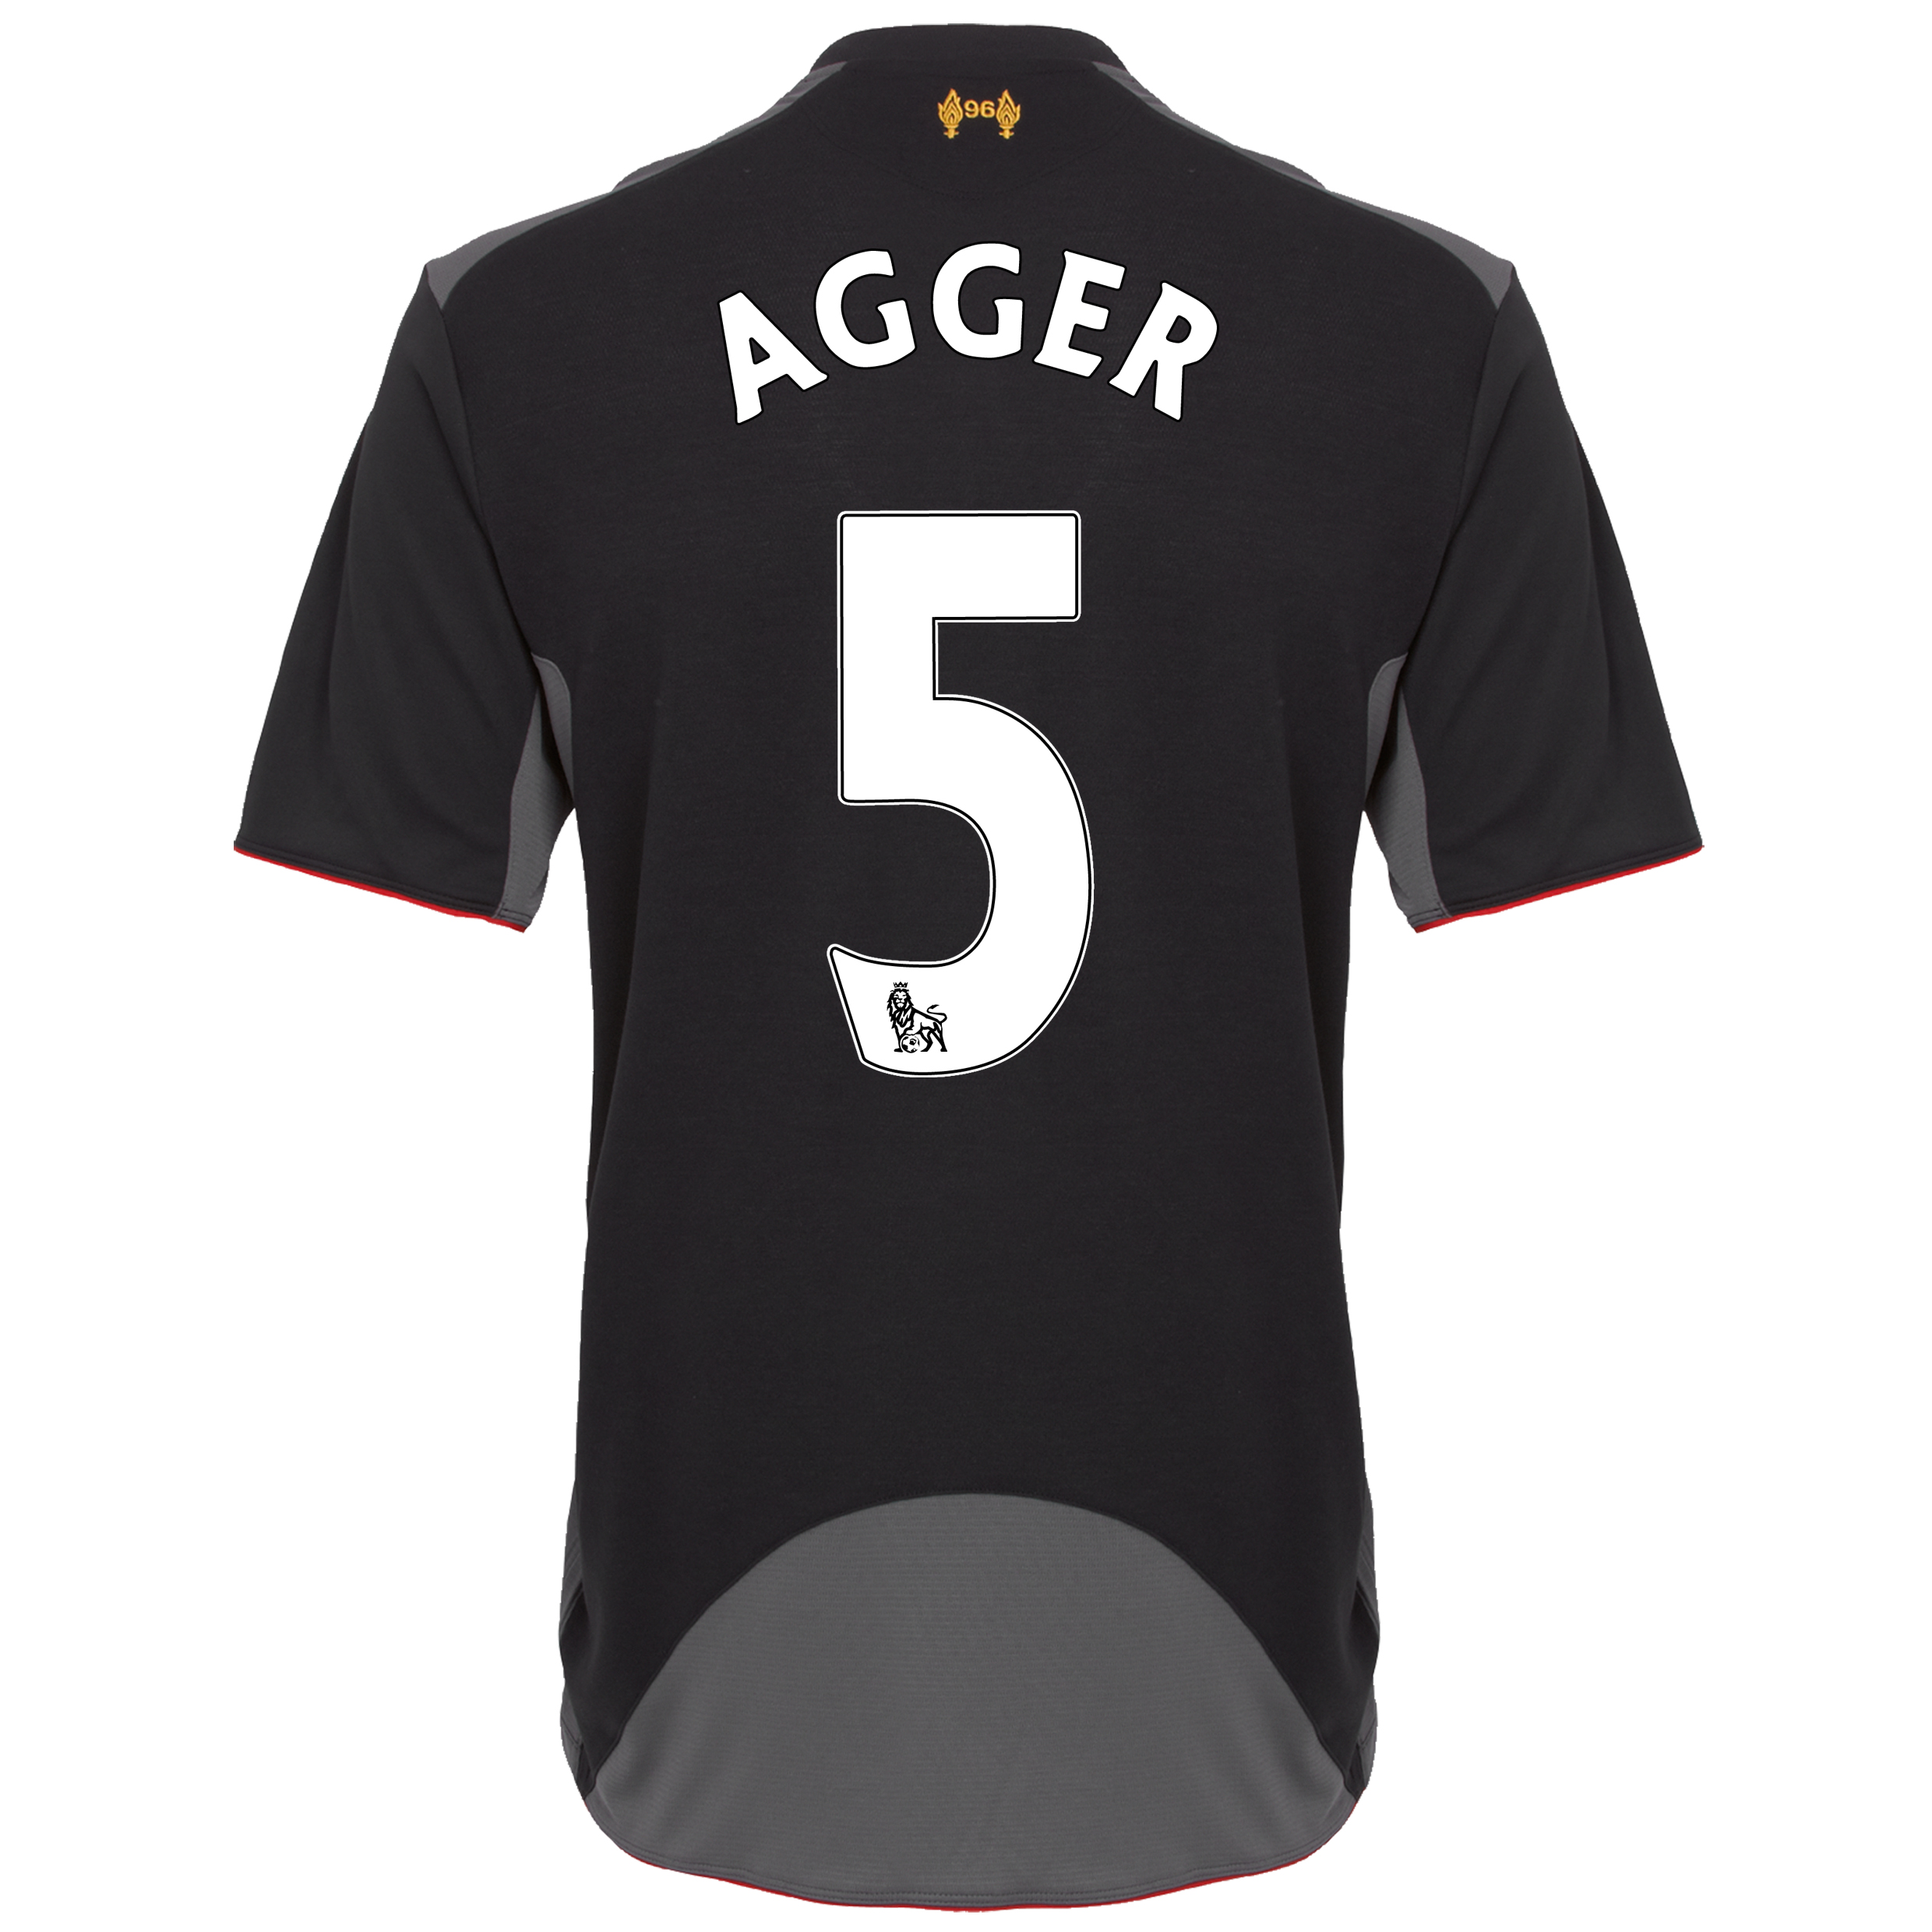 Liverpool Away Shirt 2012/13 - Youths with Agger 5 printing